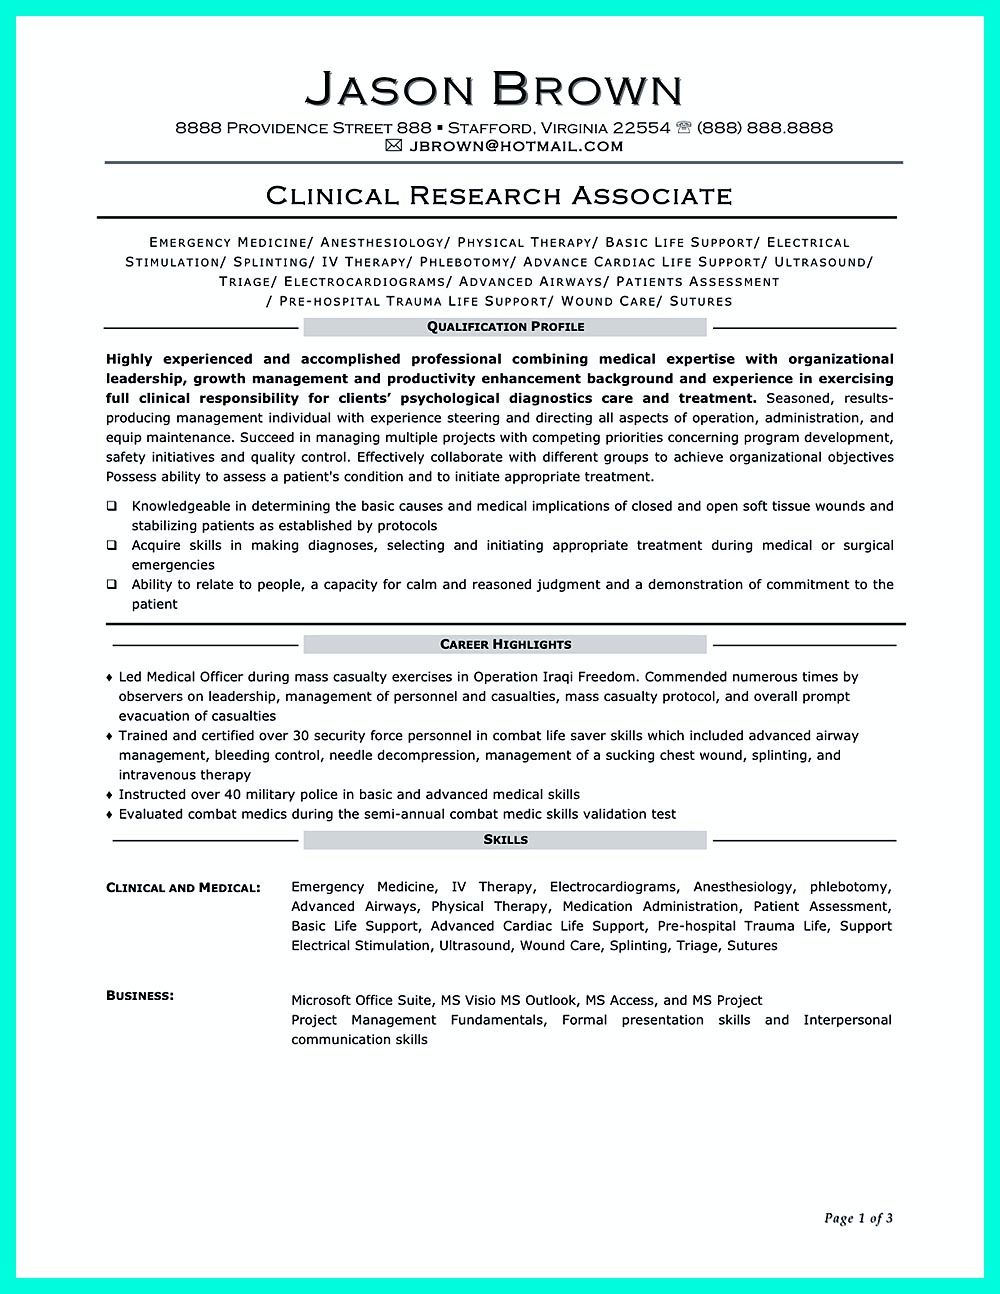 Clinical Research Associate Resume objectives are needed to convince your  future company that your goal and